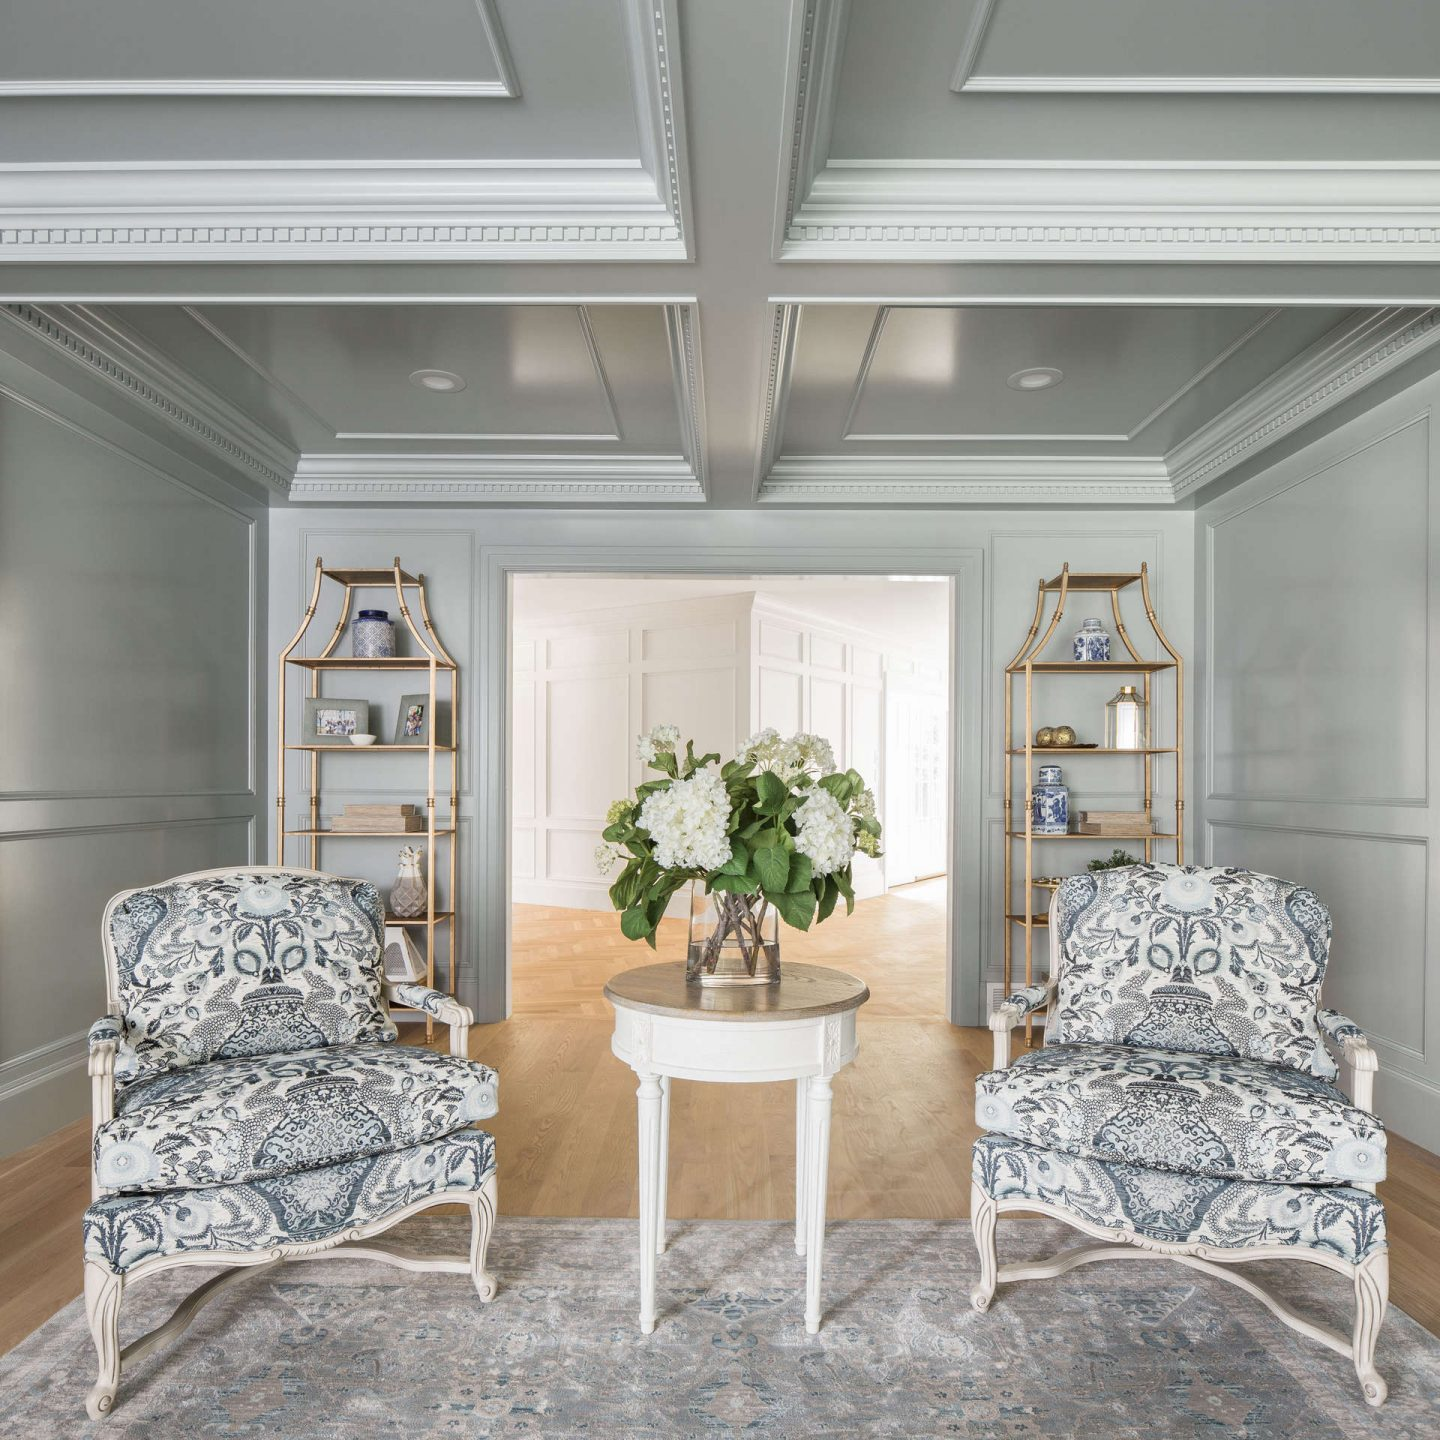 Bergere chairs in a paneled traditional style living area by the Fox Group. Come explore these timeless design ideas...hello lovely indeed. #interiordesign #thefoxgroup #millwork